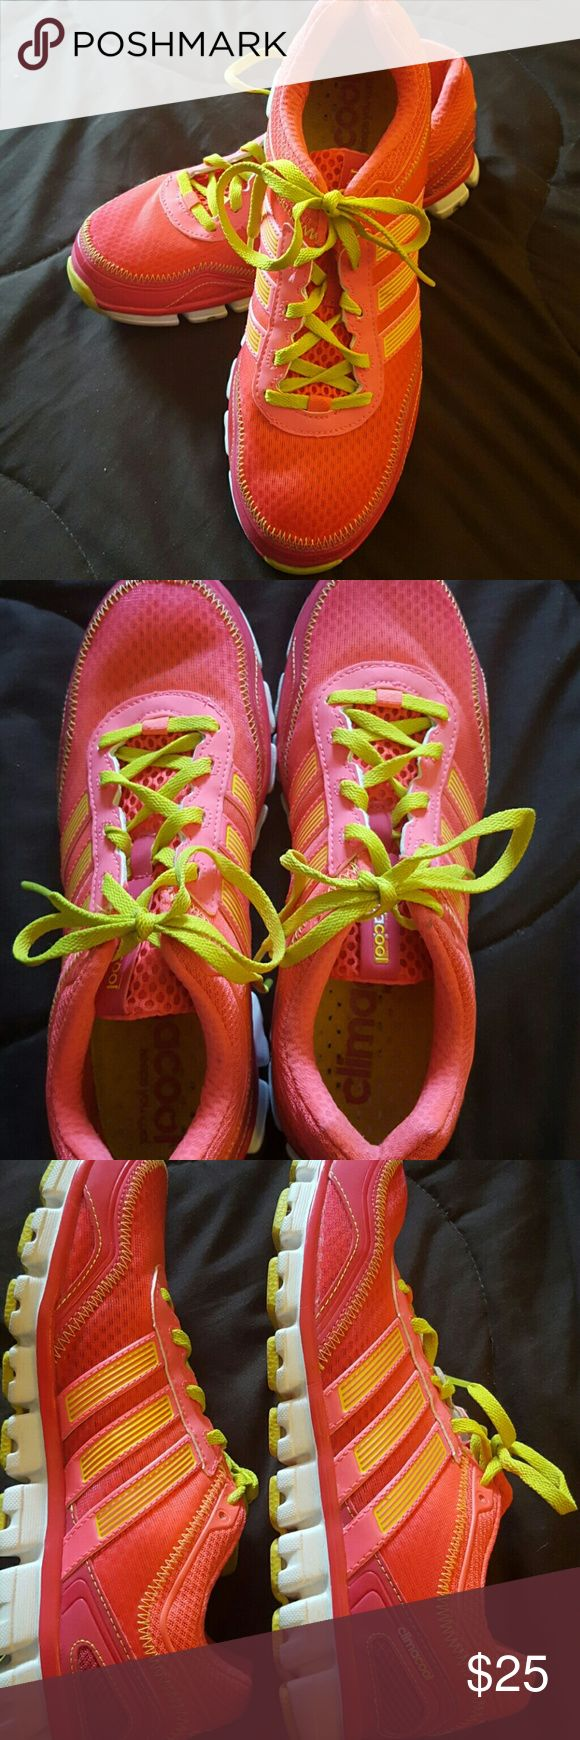 REDUCED! Climate cool Neon running  sneakers Climate cool Neon running sneakers Adidas Shoes Sneakers